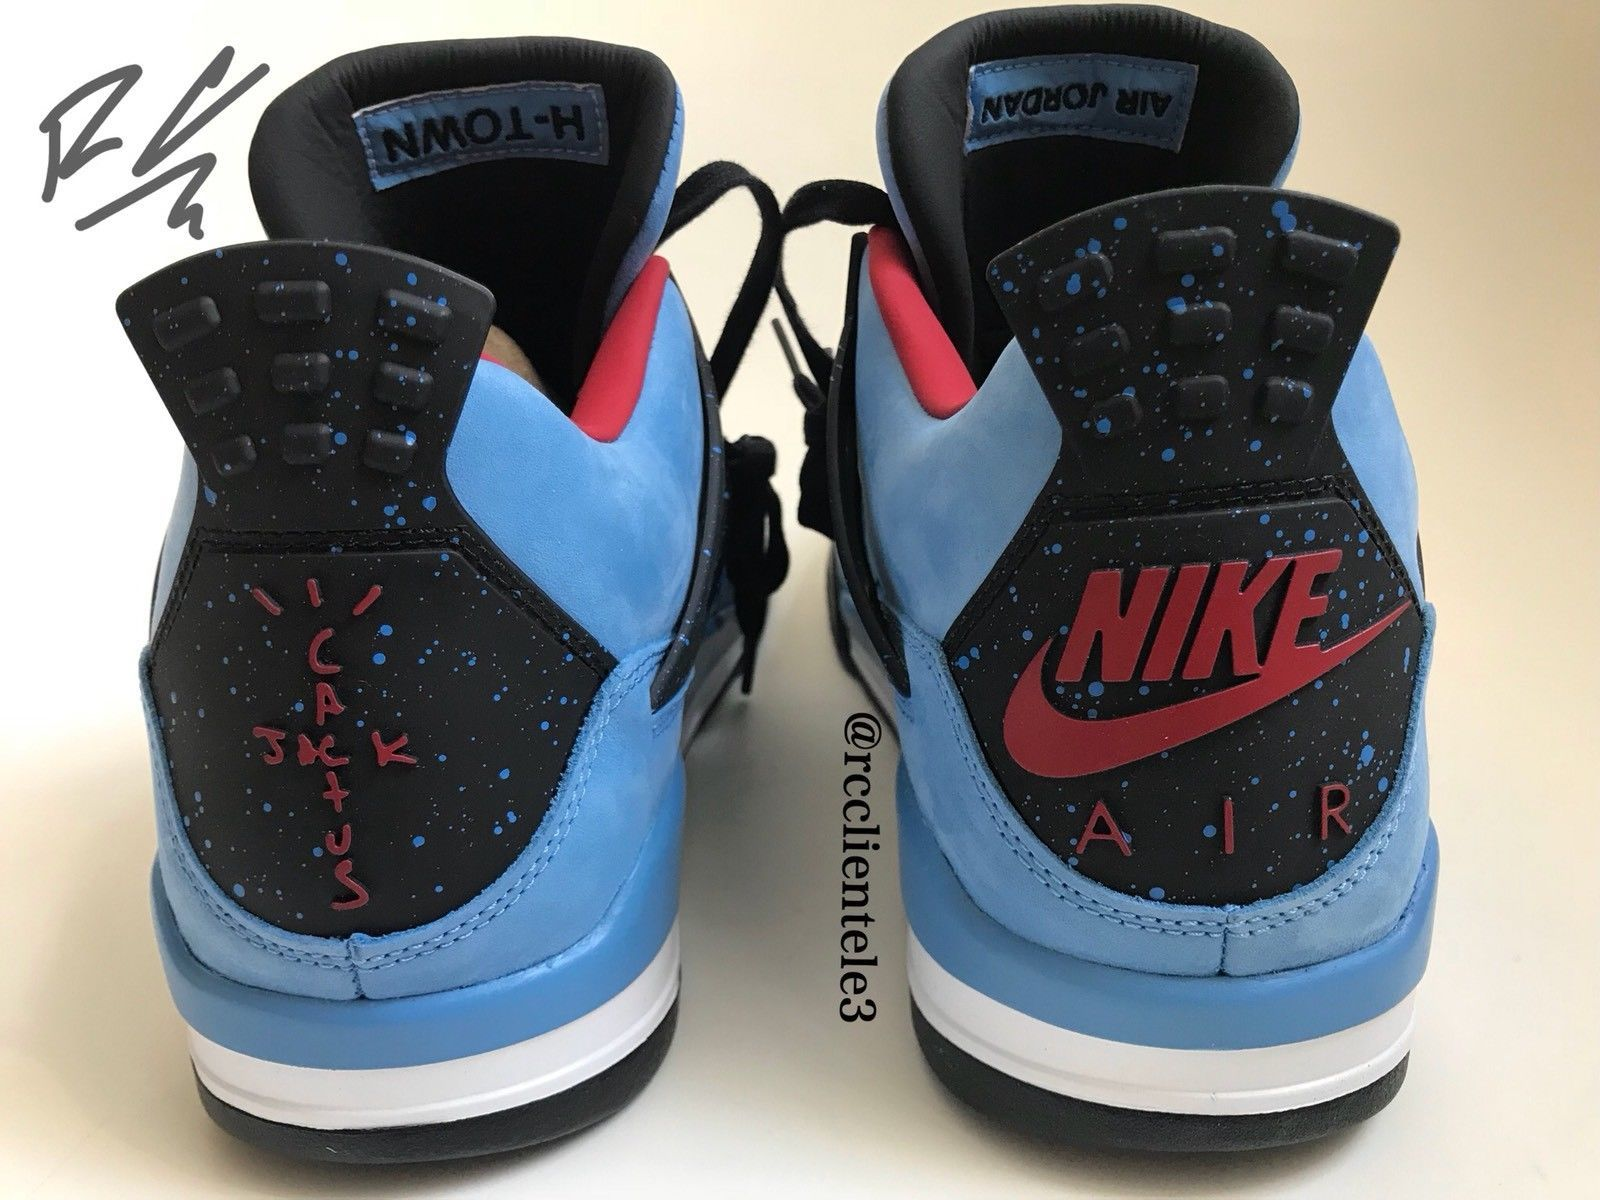 208e5909ae84 NIKE AIR JORDAN IV 4 RETRO US 12 TRAVIS SCOTT PROMO SAMPLE F F CACTUS JACK